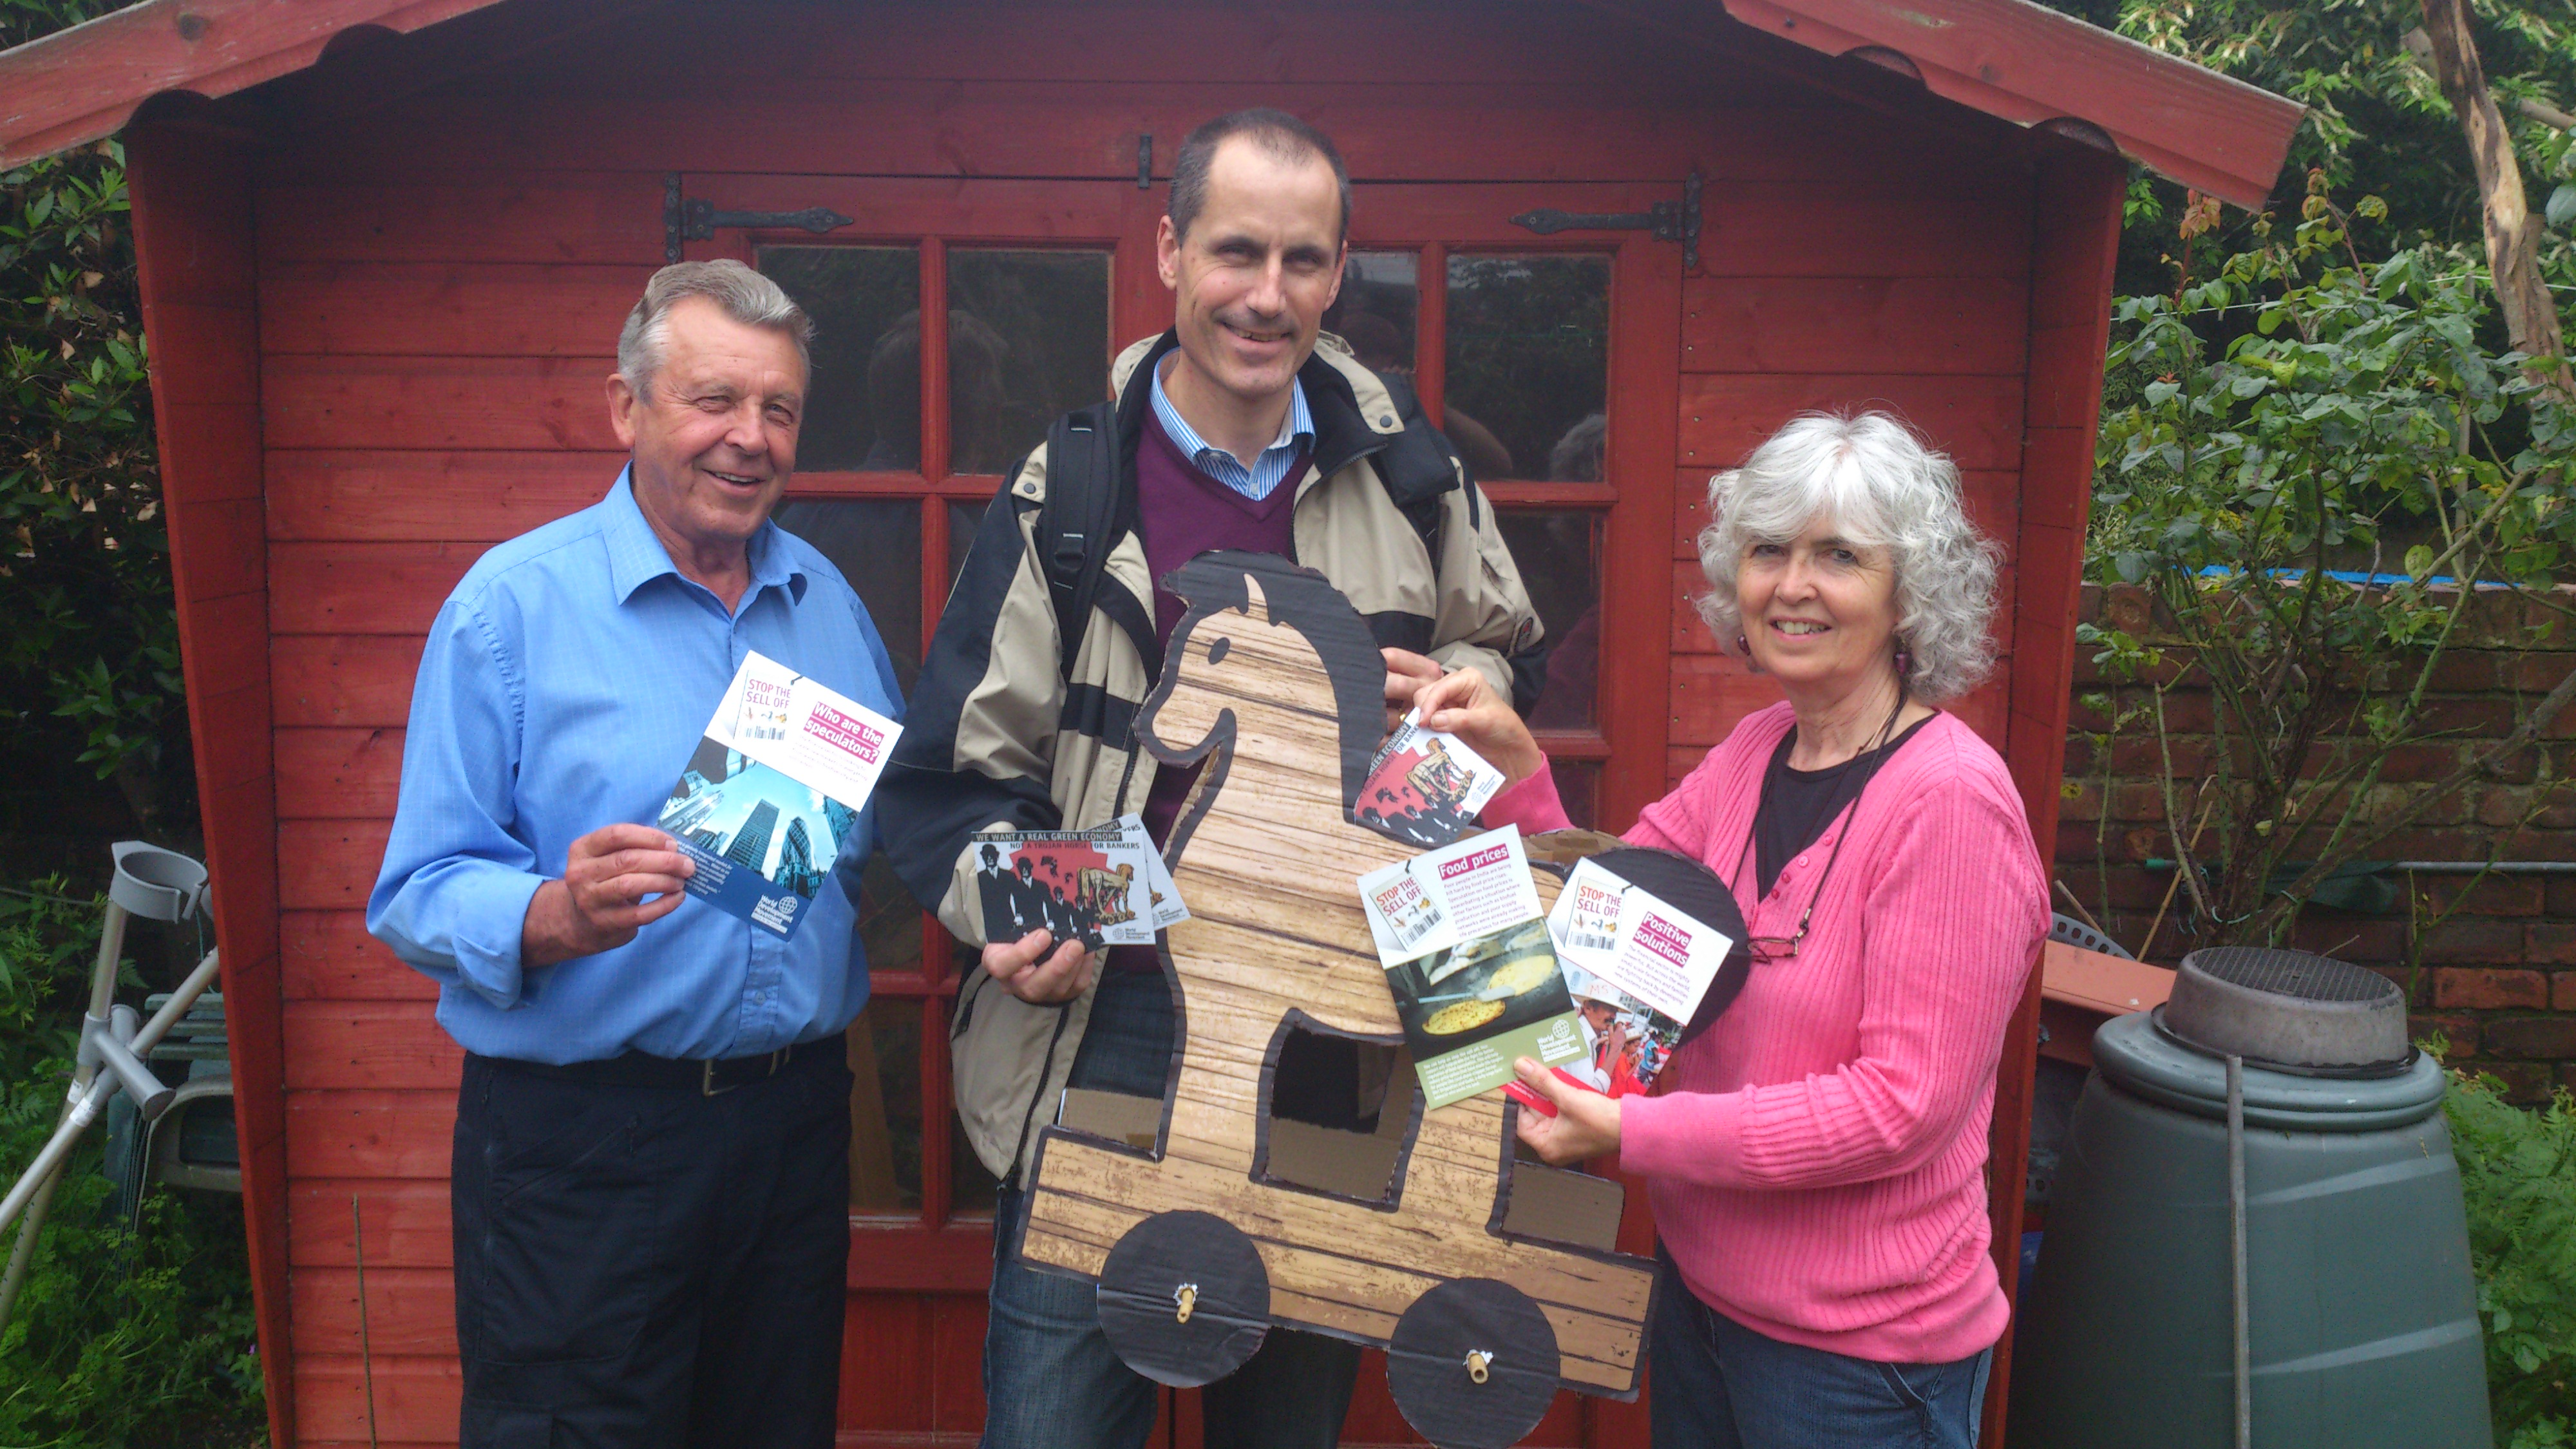 Sefton Central Labour MP Bill Esterson with Crosby campaigners Josephine and Chris Rawsthorne.